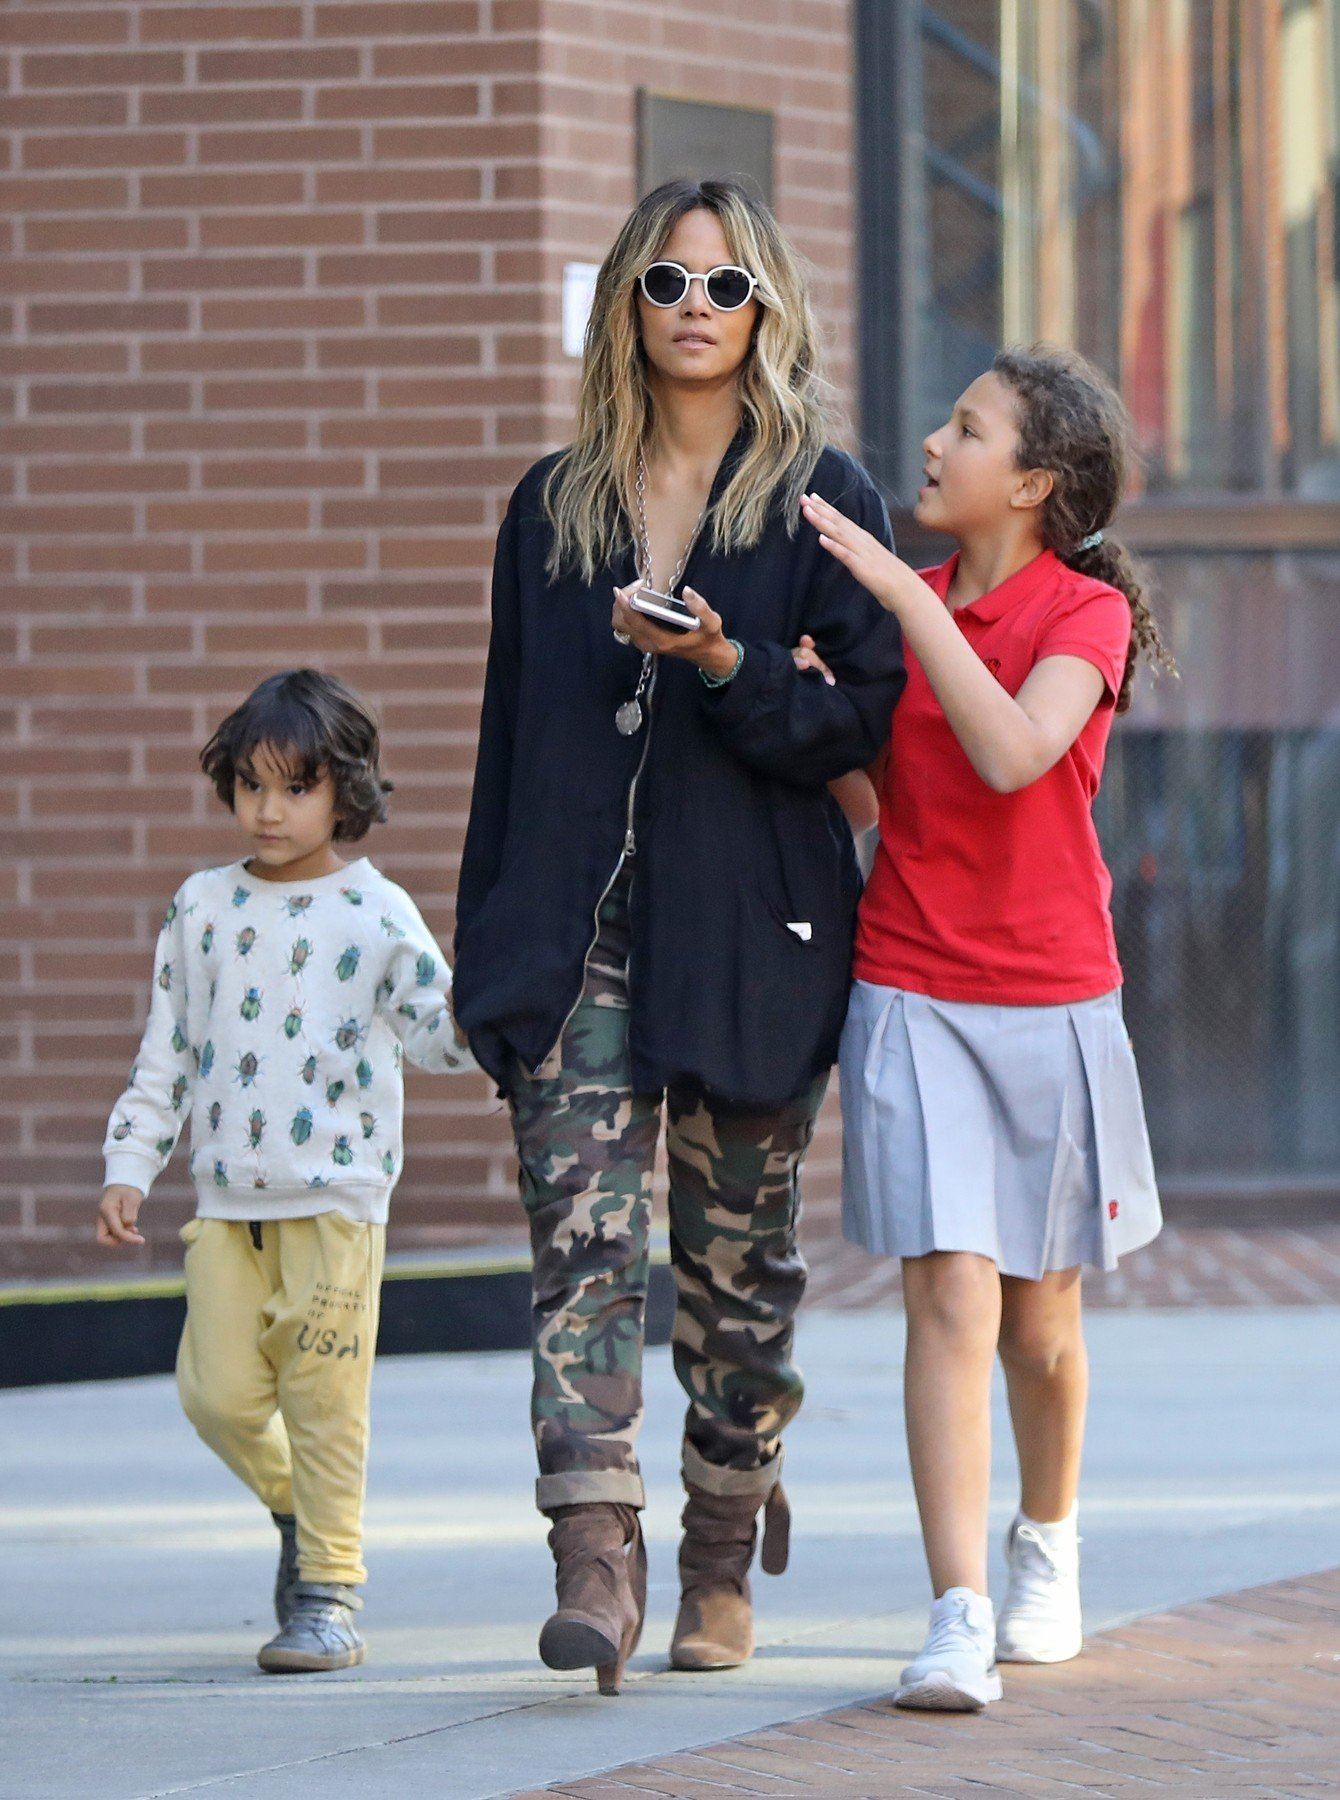 Beverly Hills, CA  - *EXCLUSIVE* Halle Berry takes her kids Nahla and Maceo shopping in Beverly Hills. The threesome walk arm in arm enjoying each others company during their family outing.  Pictured: Halle Berry    *UK Clients - Pictures Containing Children Please Pixelate Face Prior To Publication*, Image: 417299699, License: Rights-managed, Restrictions: , Model Release: no, Credit line: Profimedia, Backgrid USA